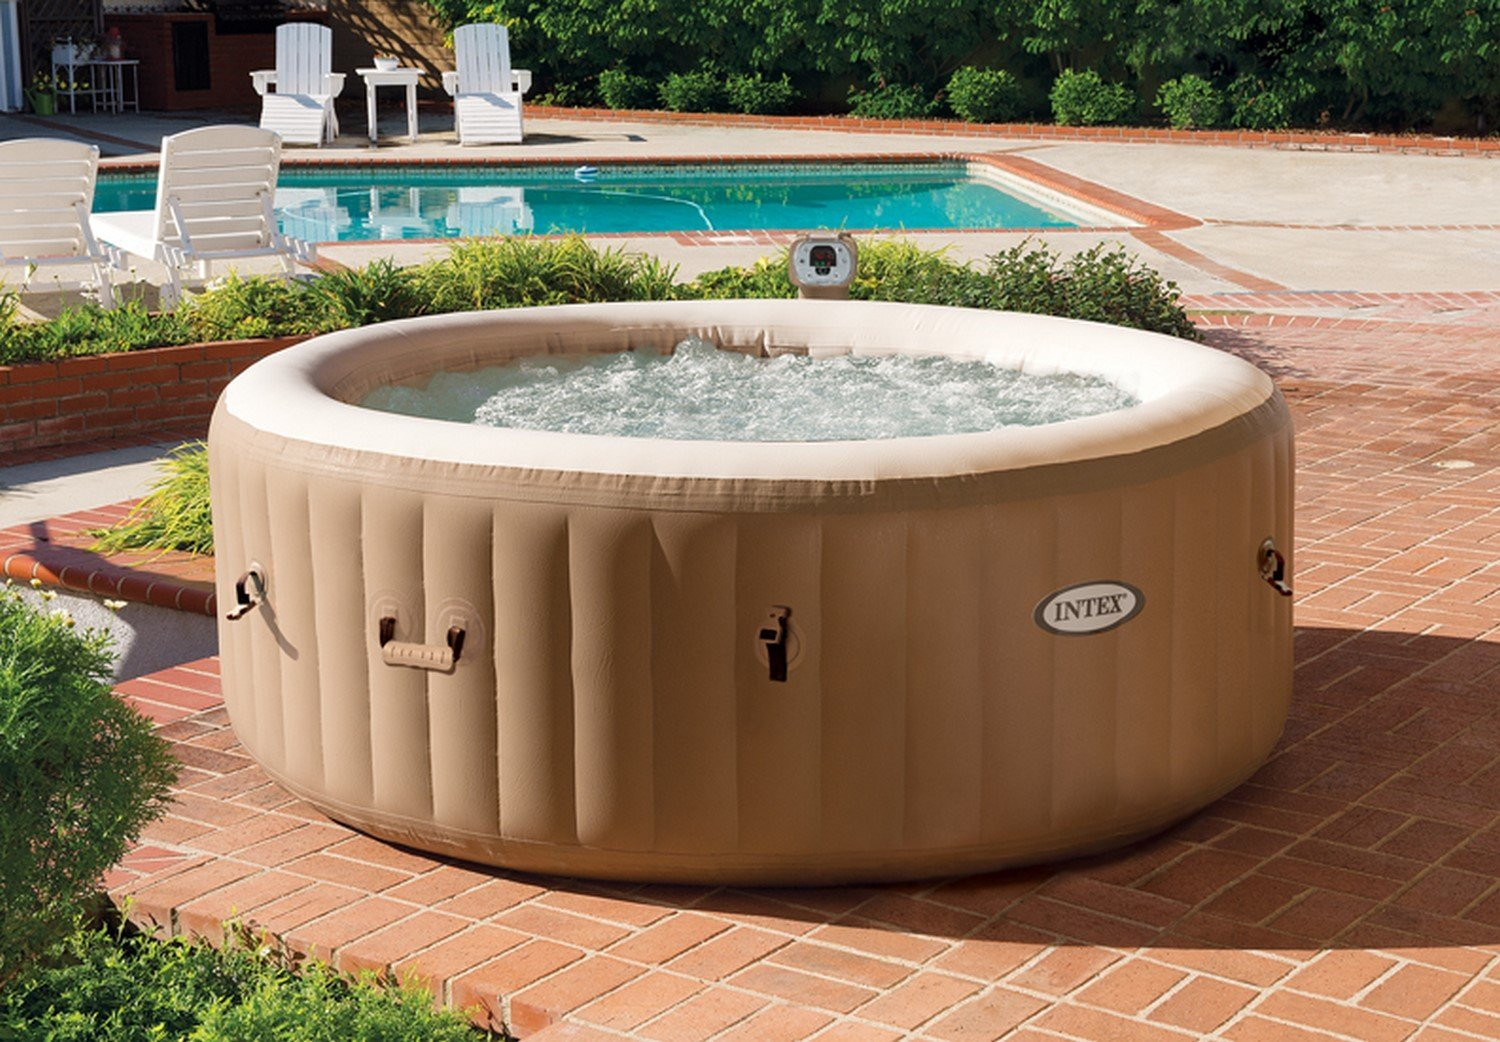 intex 4 person purespa inflatable hot tub detailed review laze up. Black Bedroom Furniture Sets. Home Design Ideas